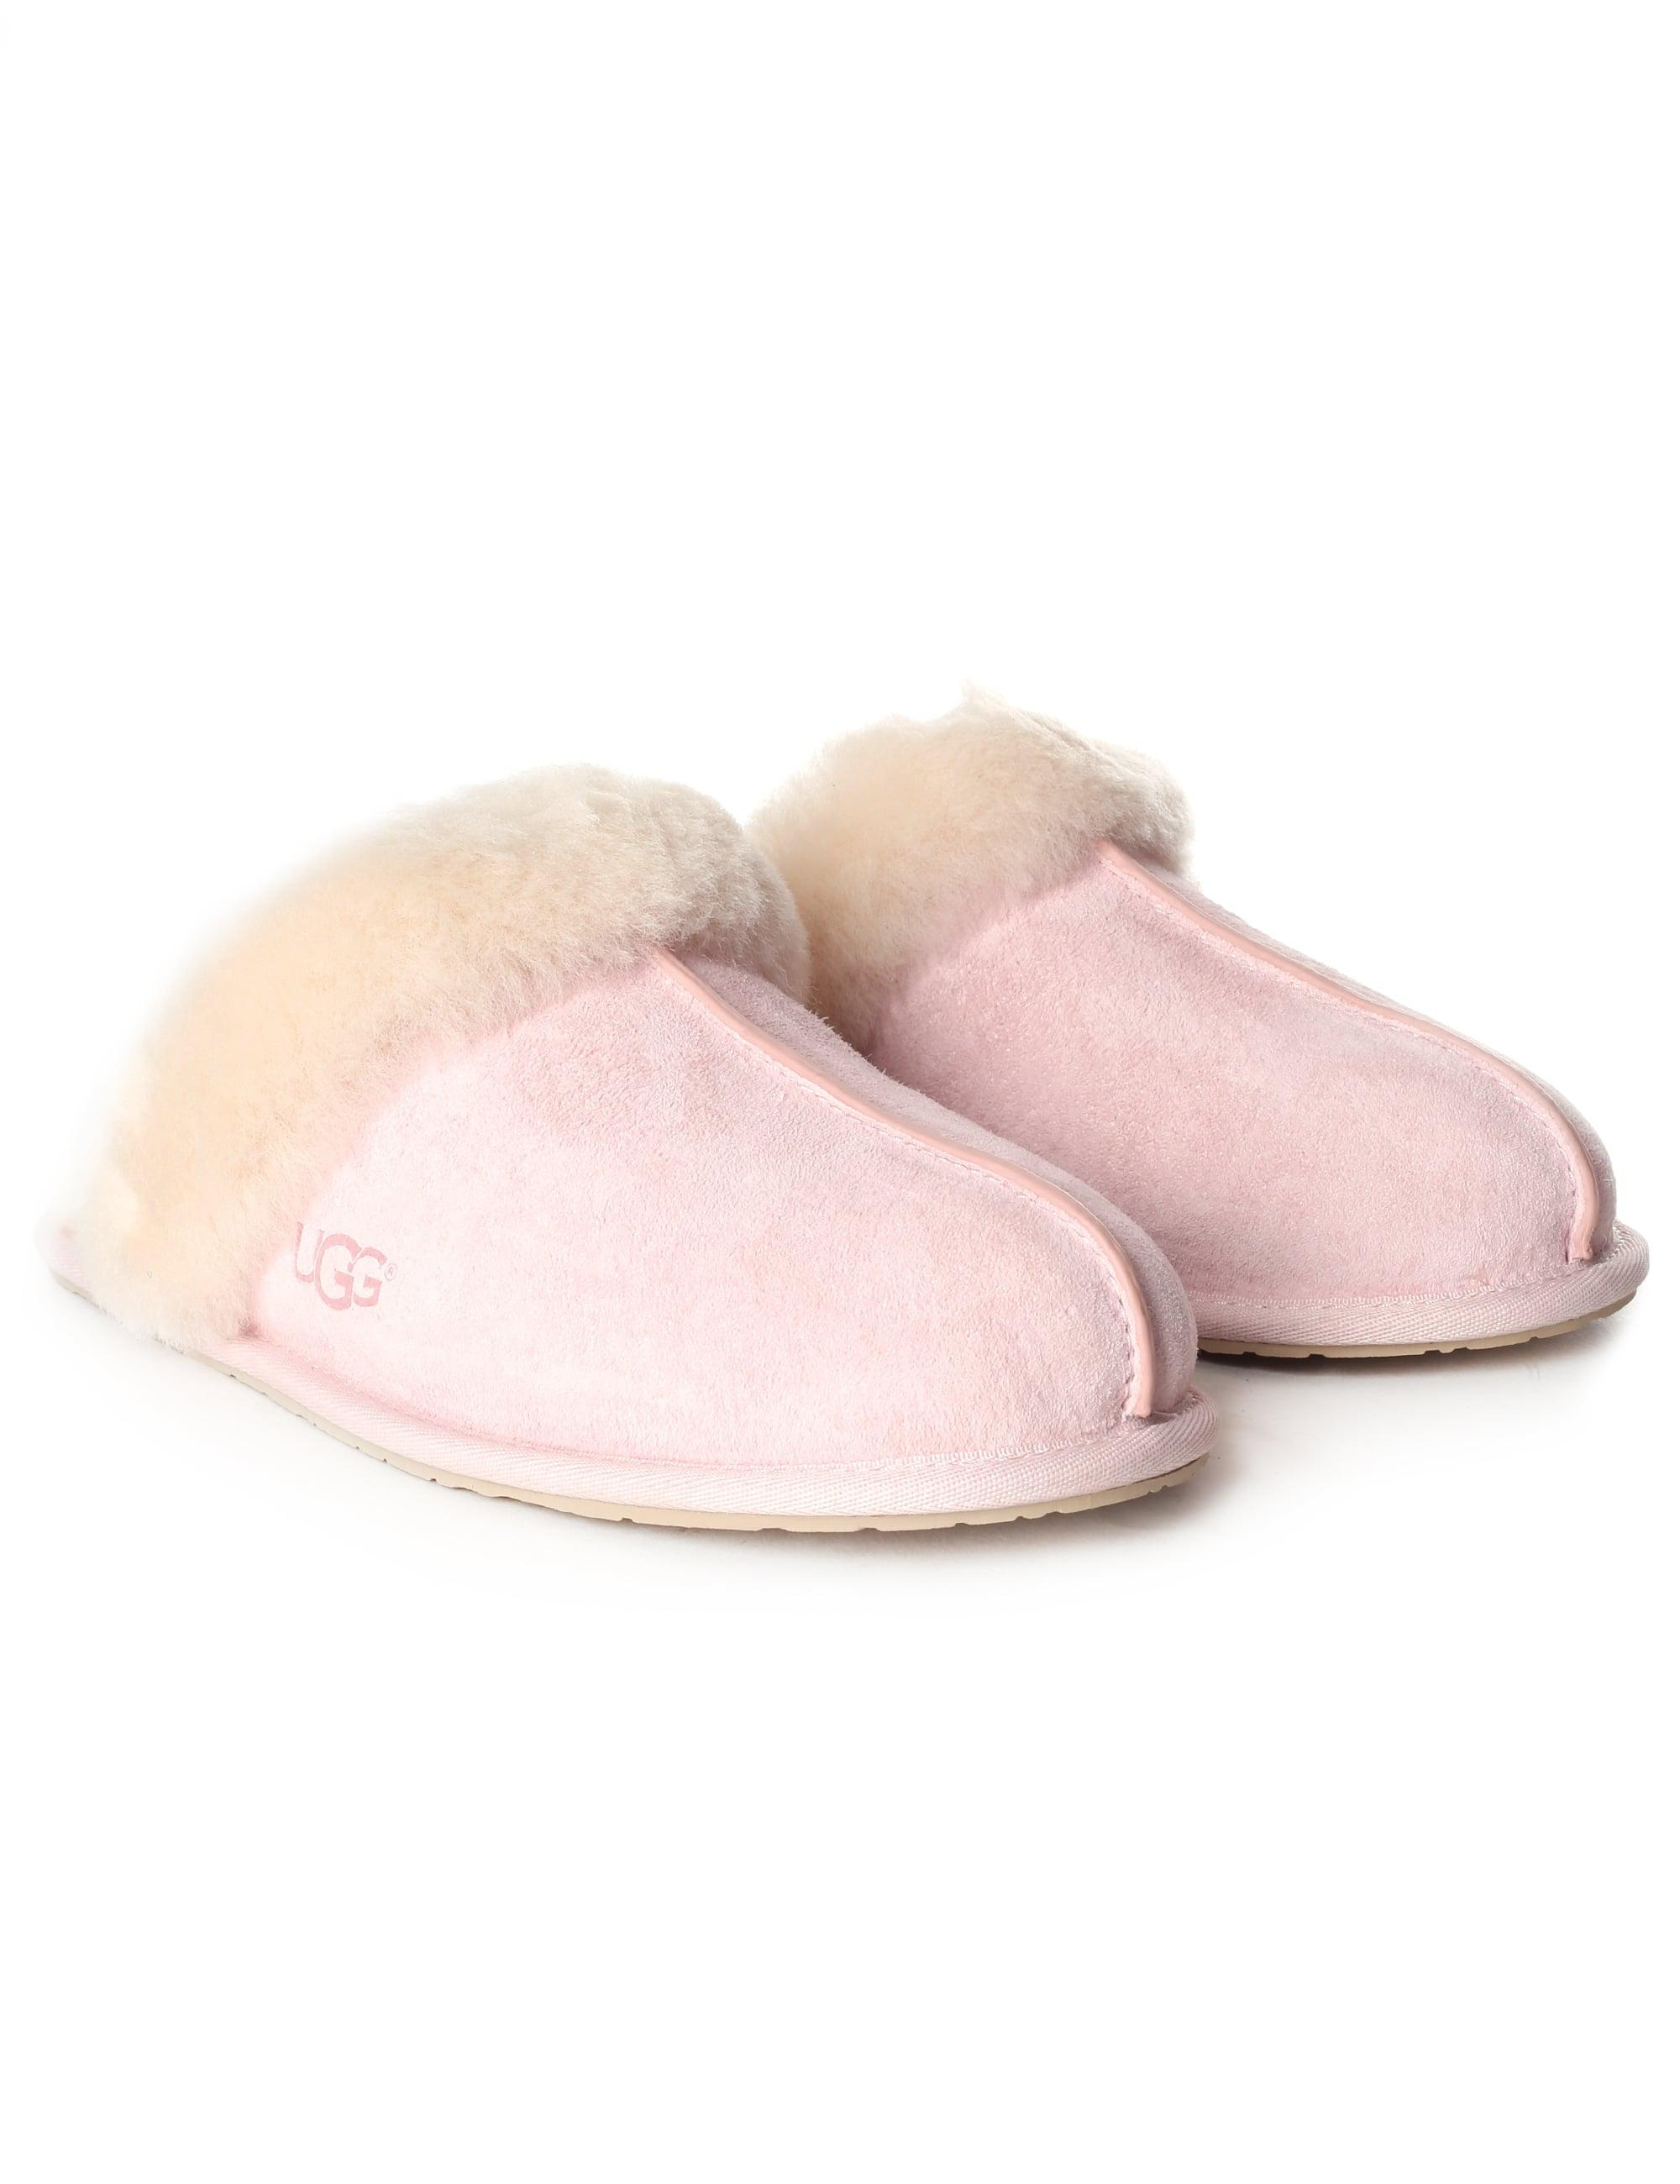 c21b8d78015c Ugg Scuffette Ii Slippers Pale Pink - Image Skirt and Slipper Imagepv.co